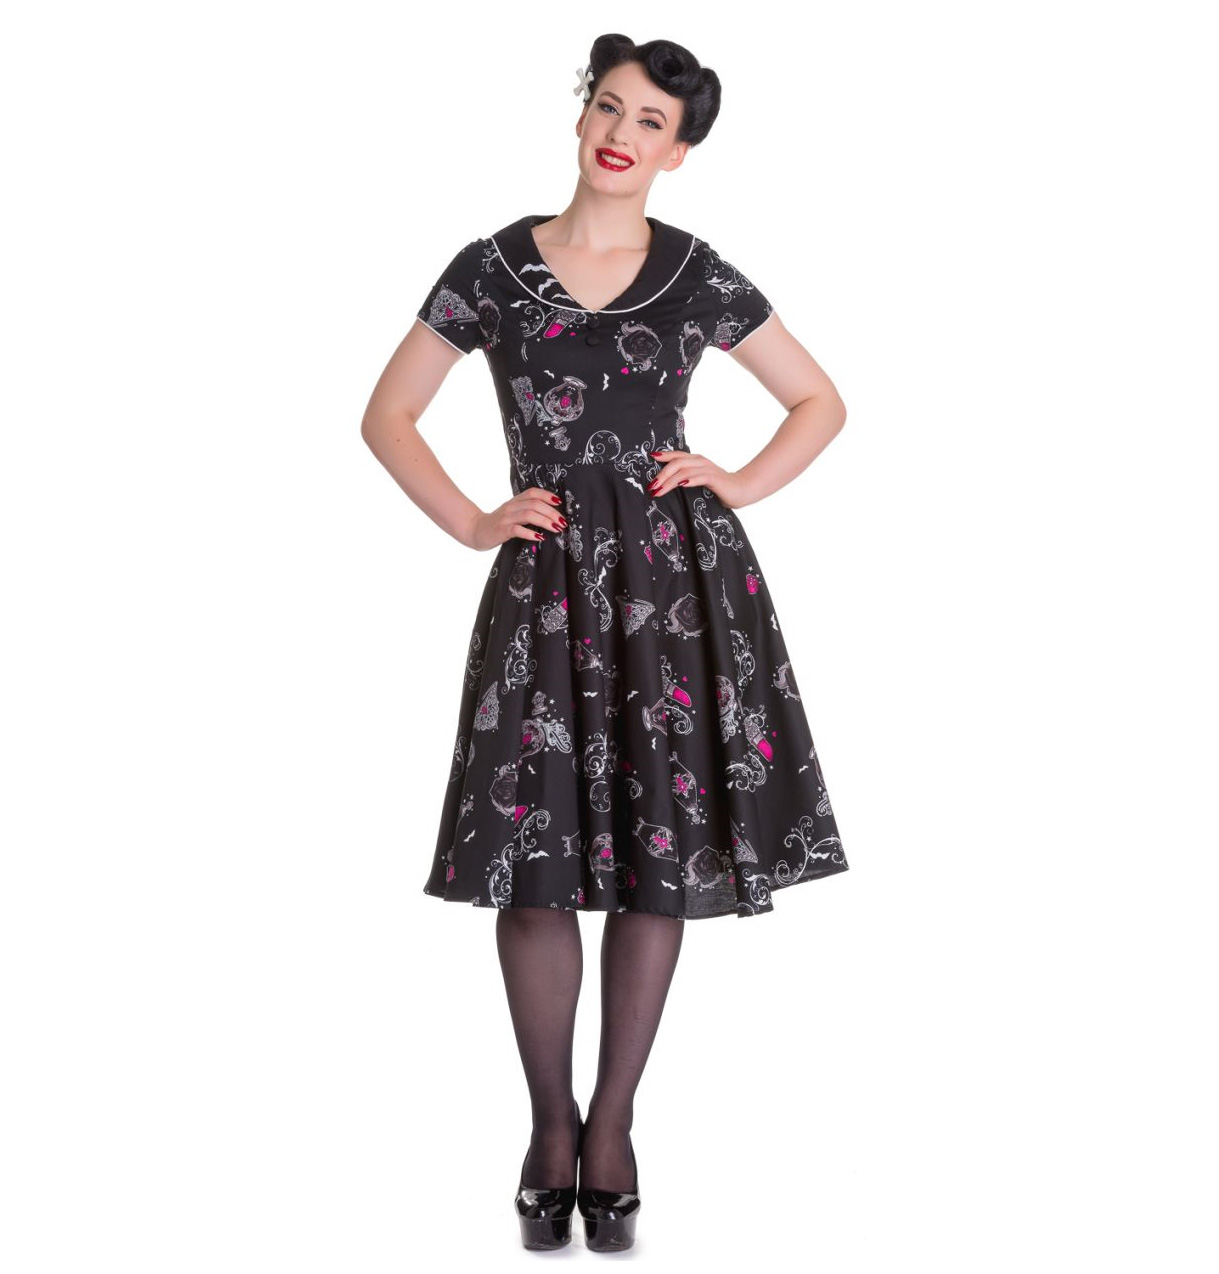 Hell-Bunny-50s-Dress-Pin-Up-Rockabilly-Black-Pink-KALONICE-Gothic-Bats-All-Sizes thumbnail 3